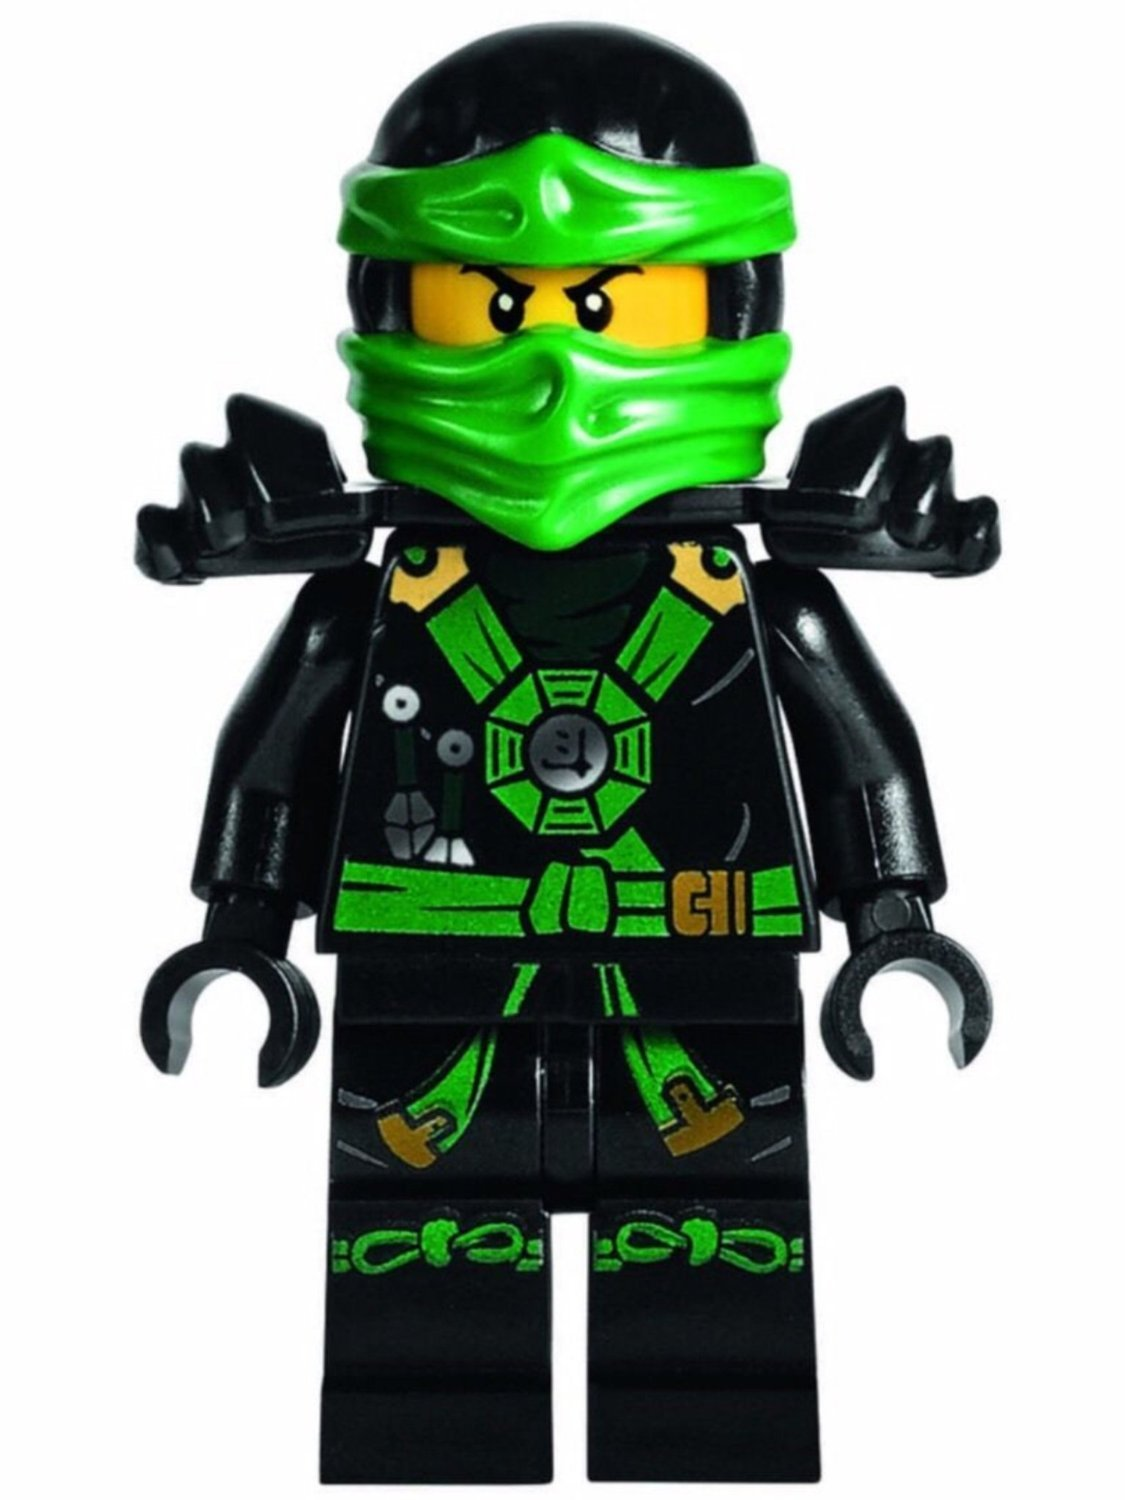 Ninjago evil lloyd images galleries - Lego ninjago ninja ...